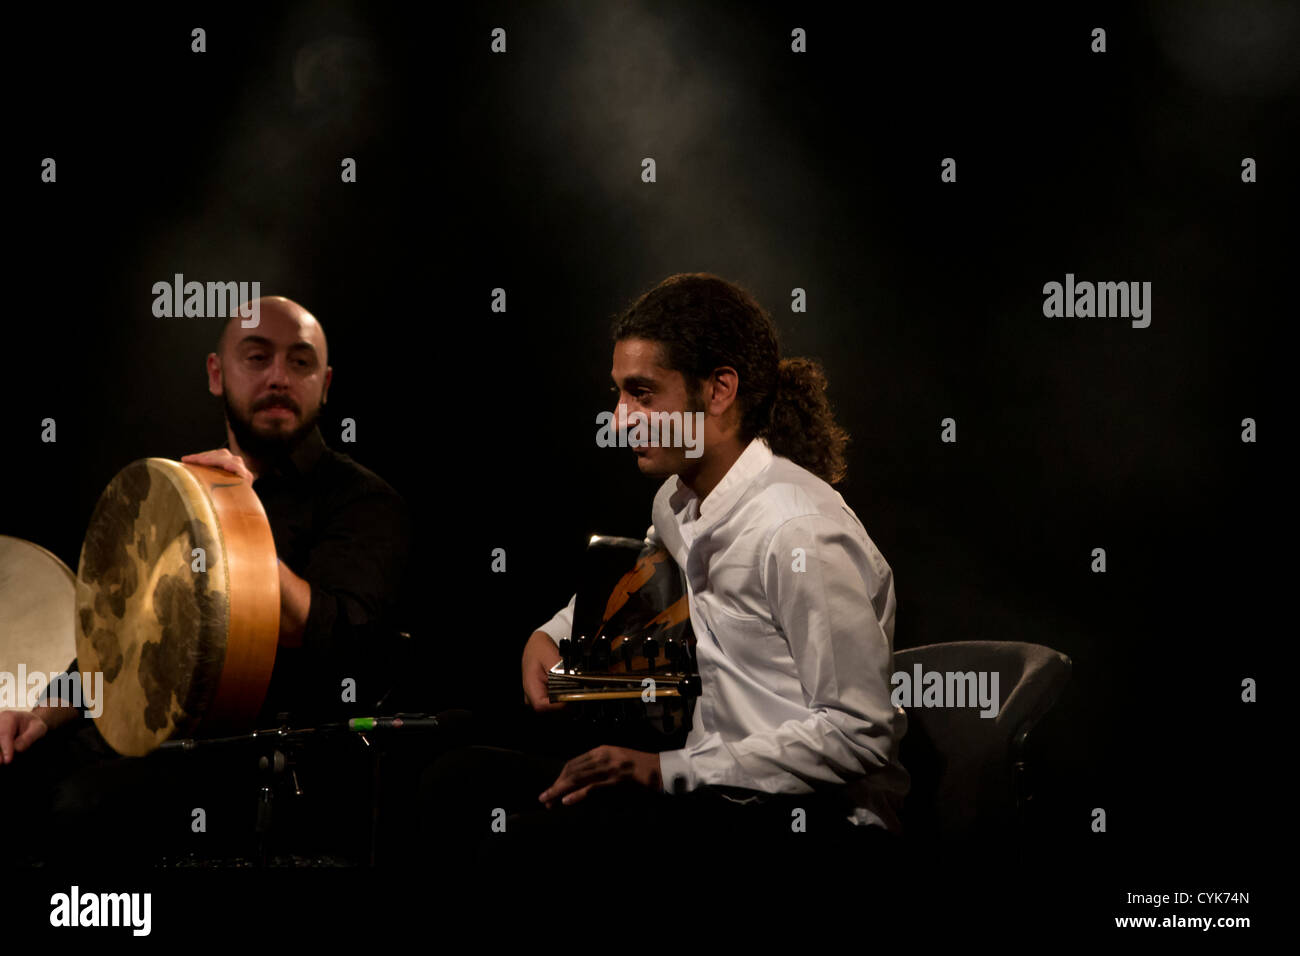 British Iraqi musician Khyam Allami performs live during the WOMEX 12 world music exhibition in Thessaloniki. - Stock Image